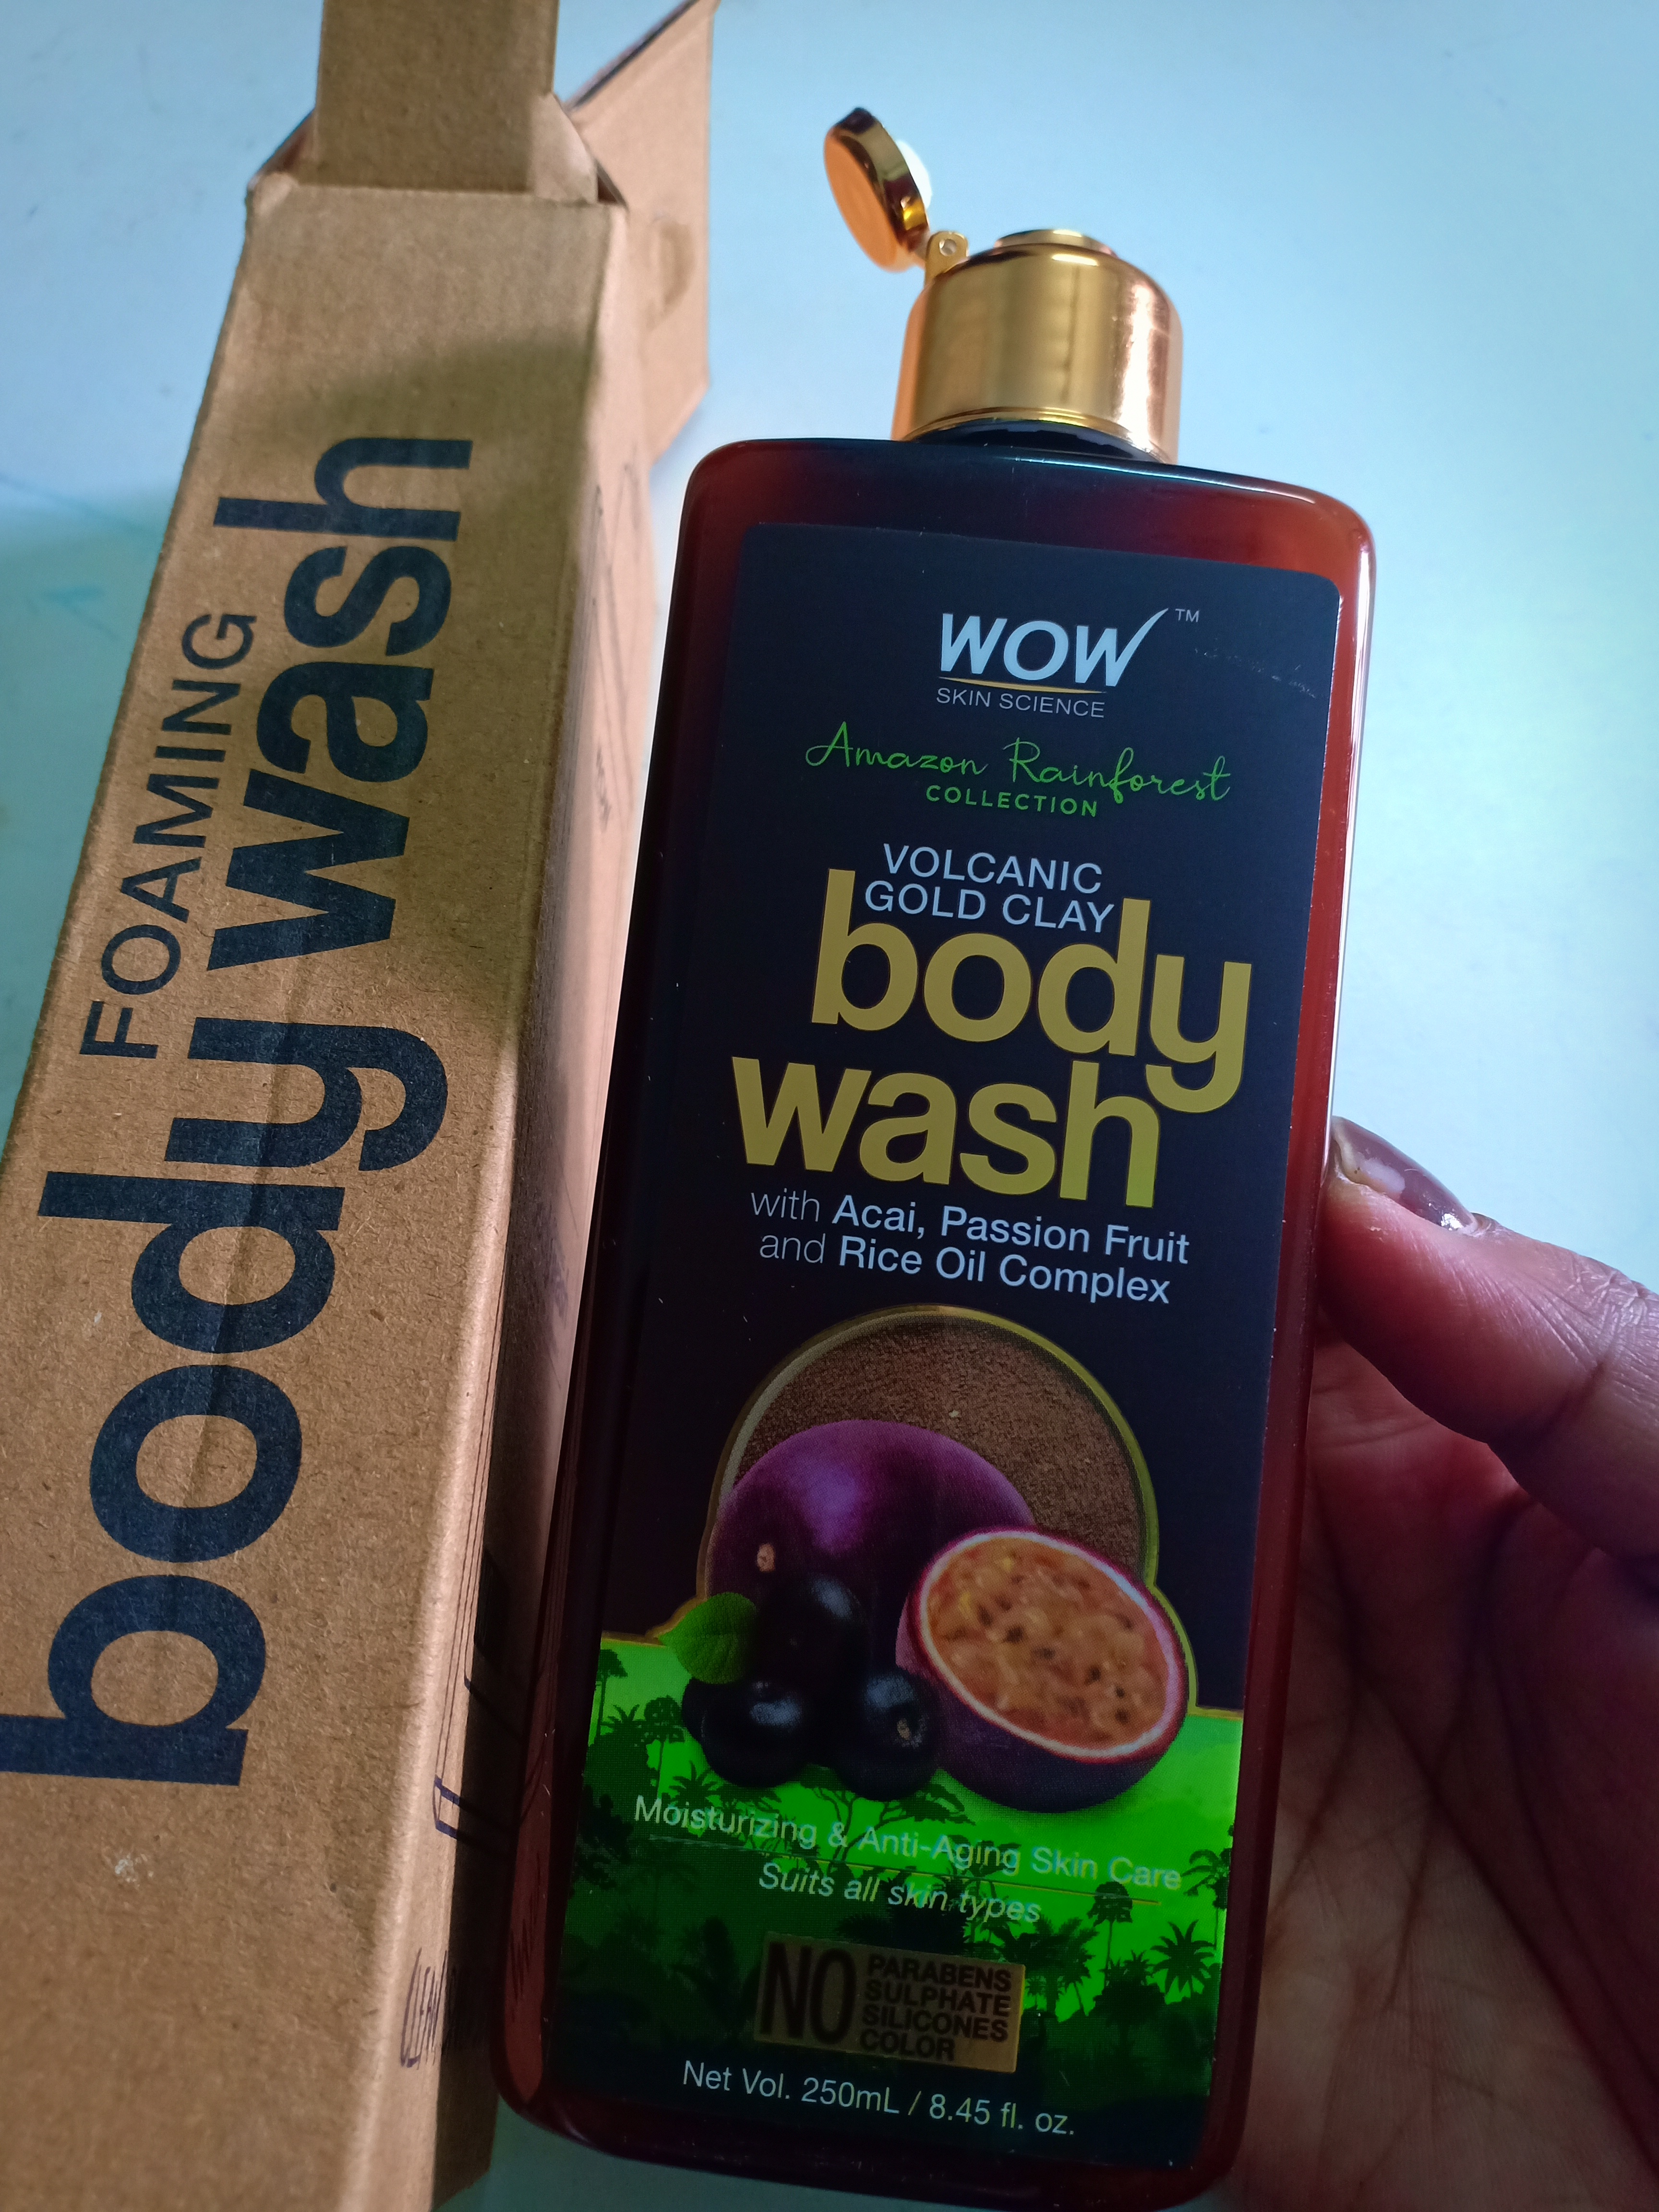 WOW Skin Science Amazon Rainforest Volcanic Gold Clay Body Wash-wow body wash review-By simplify_your_life